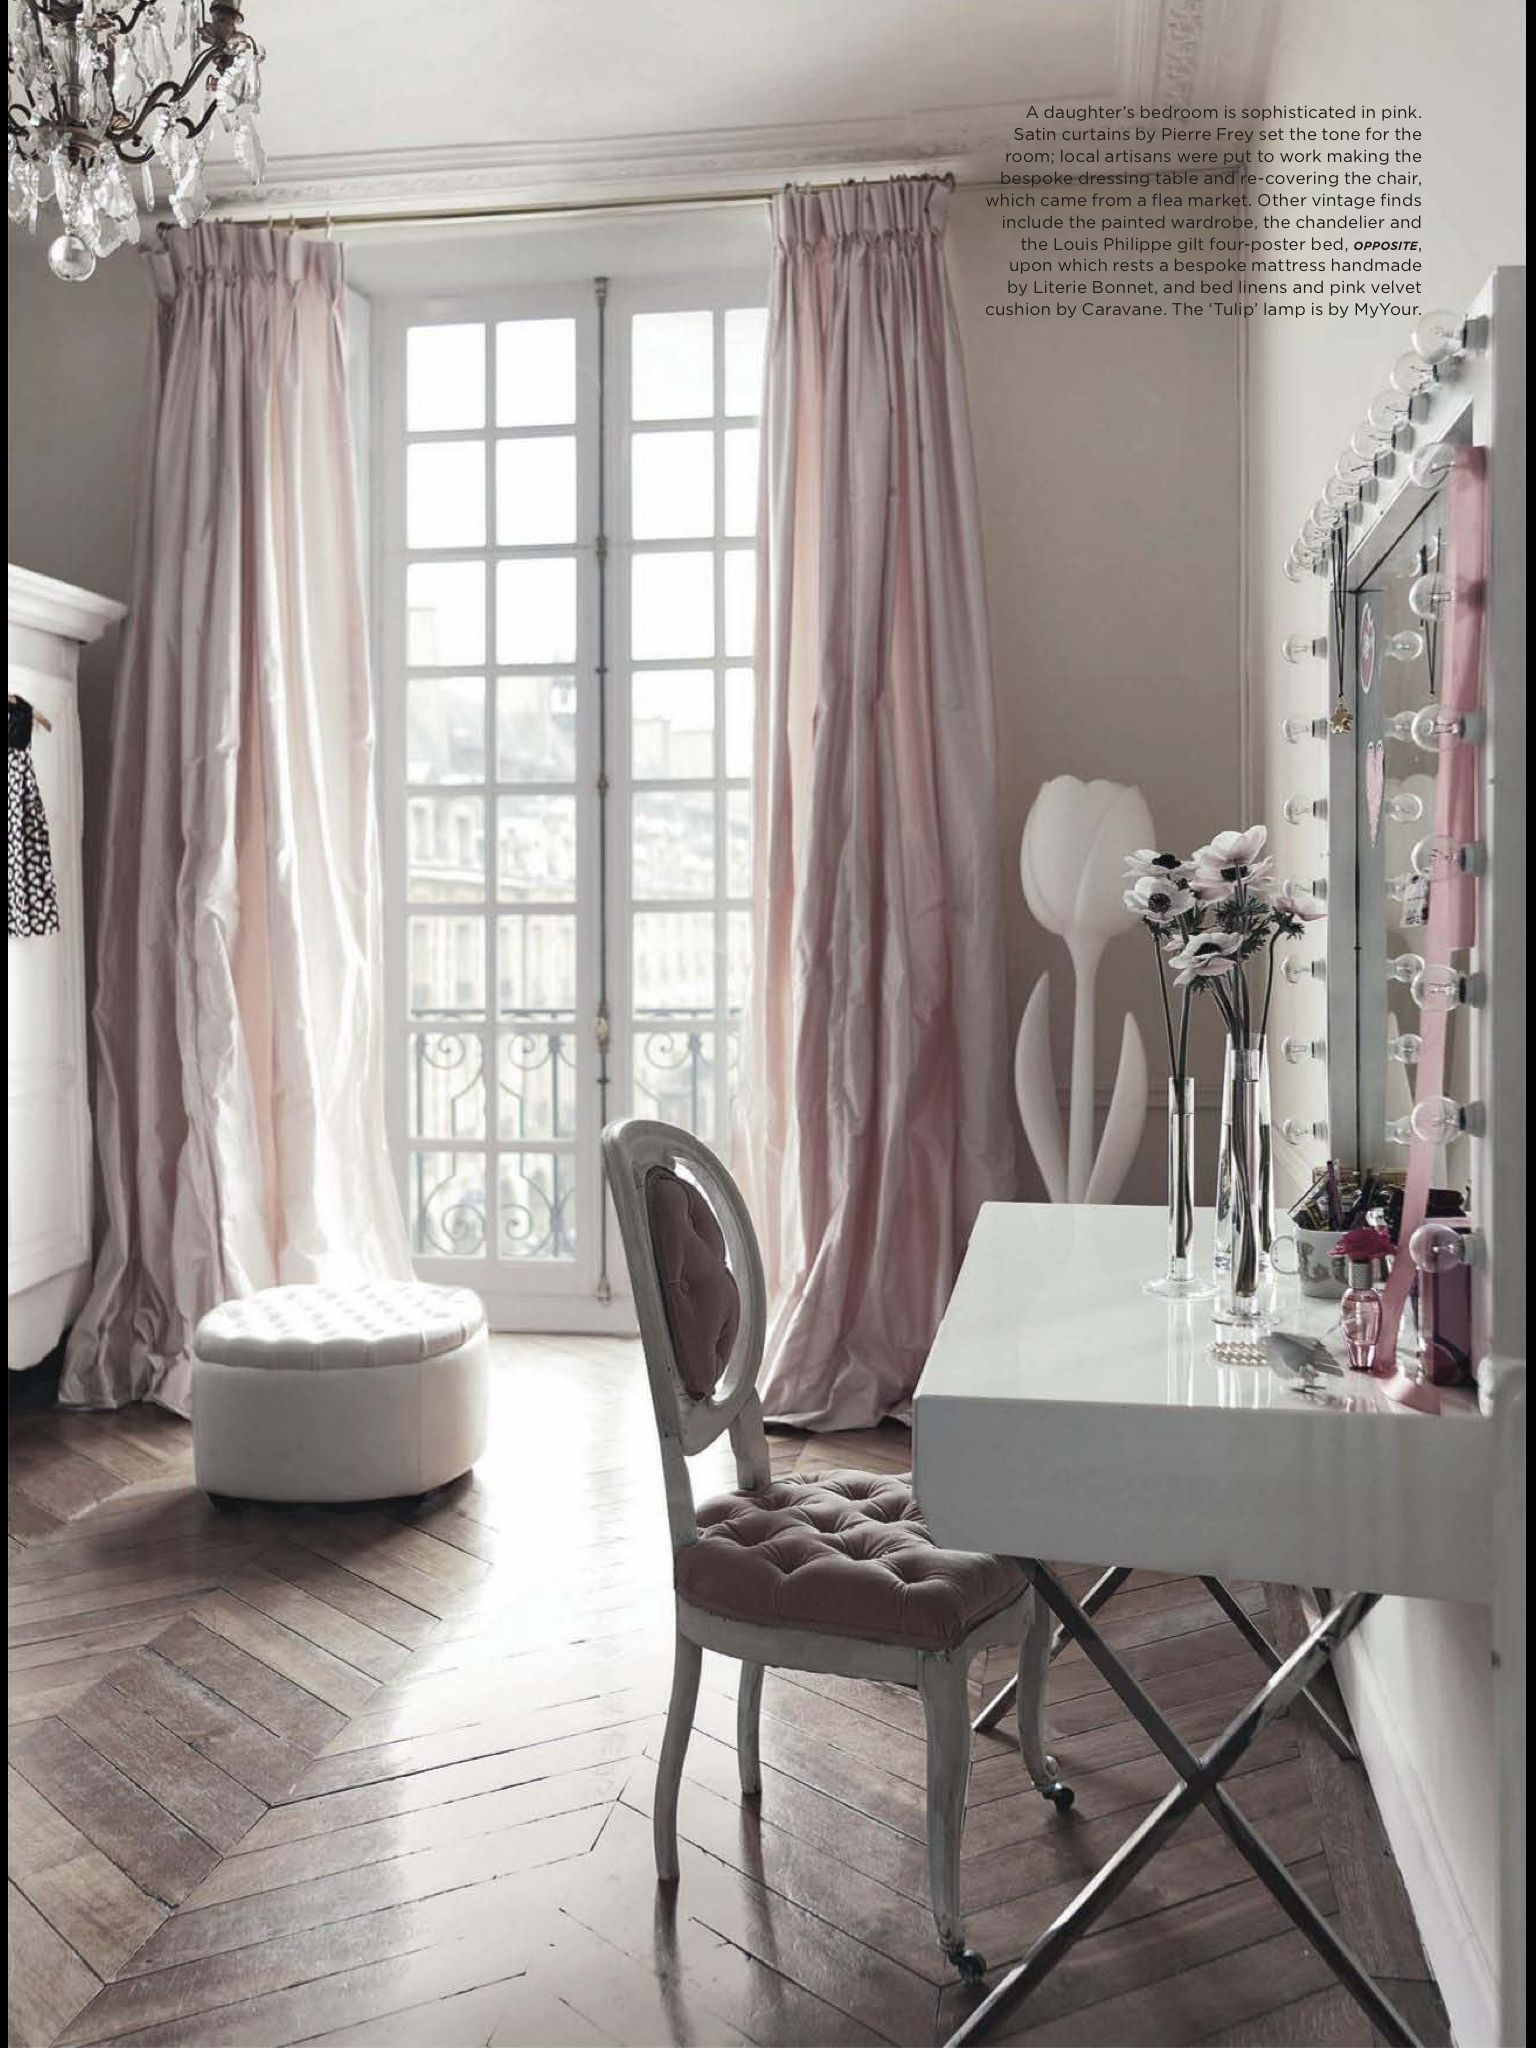 At Home With Blush Gray Walls And Floor Patterns